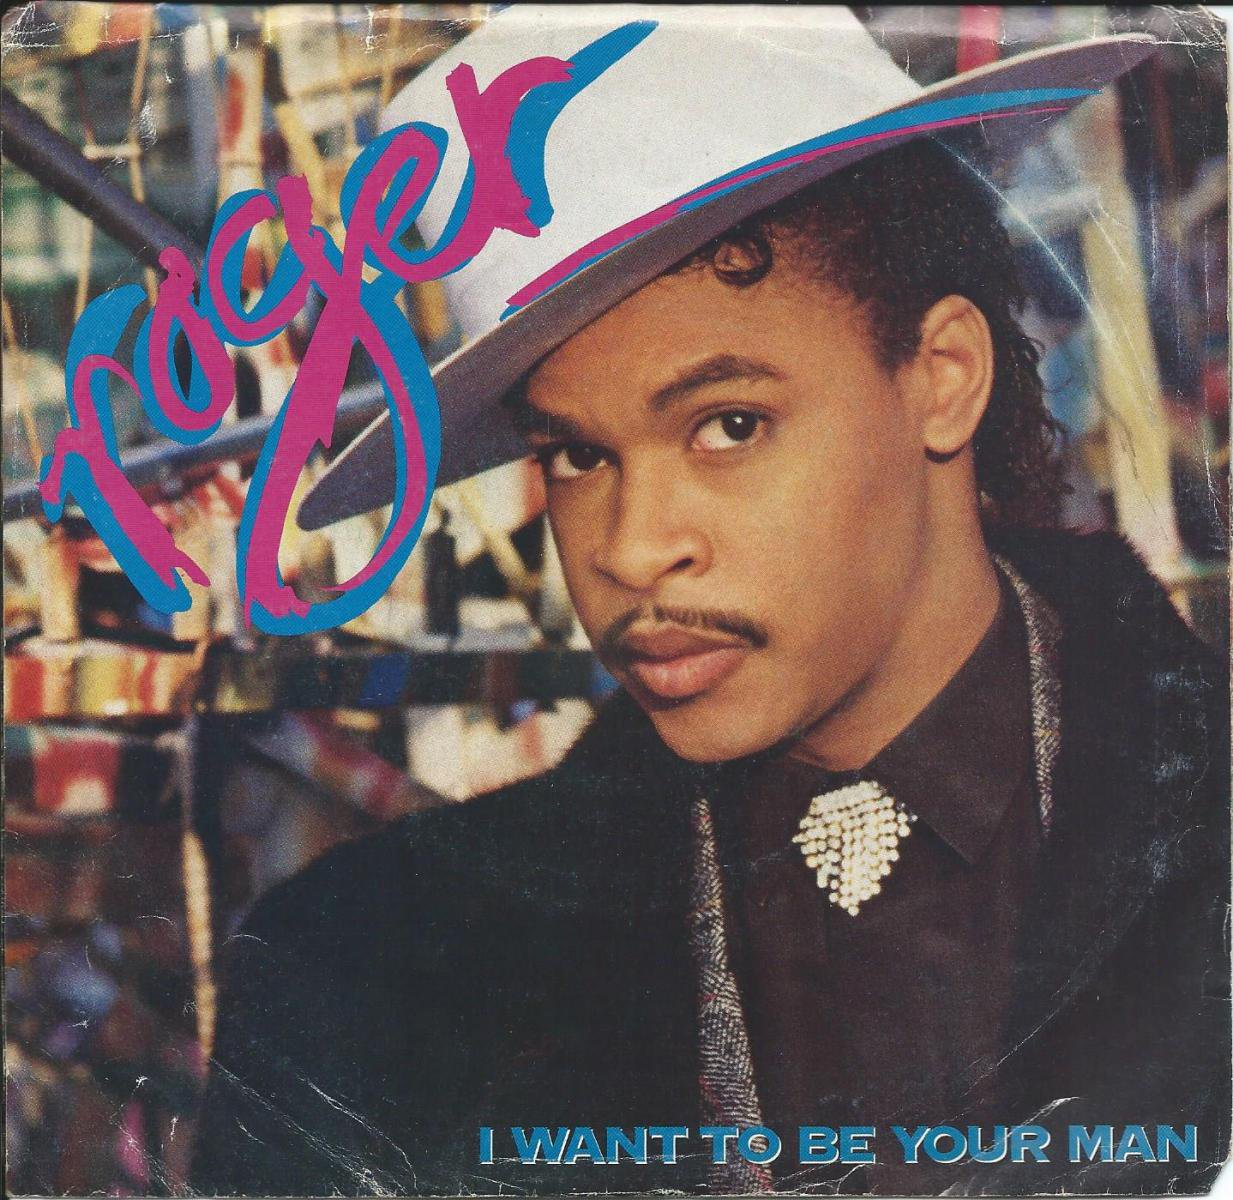 ROGER / I WANT TO BE YOUR MAN / I REALLY WANT TO BE YOUR MAN (7